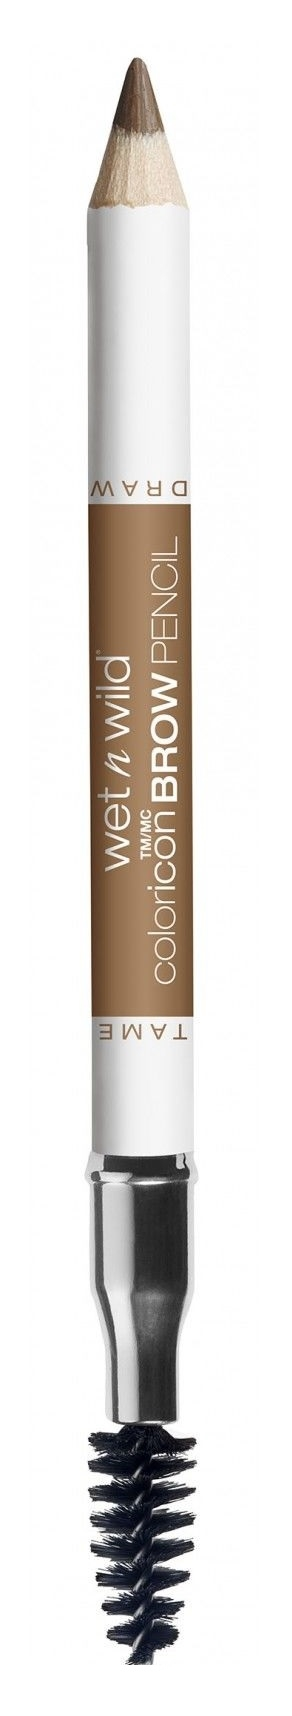 Wet N Wild Coloricon Brow Pencil Blonde Moment